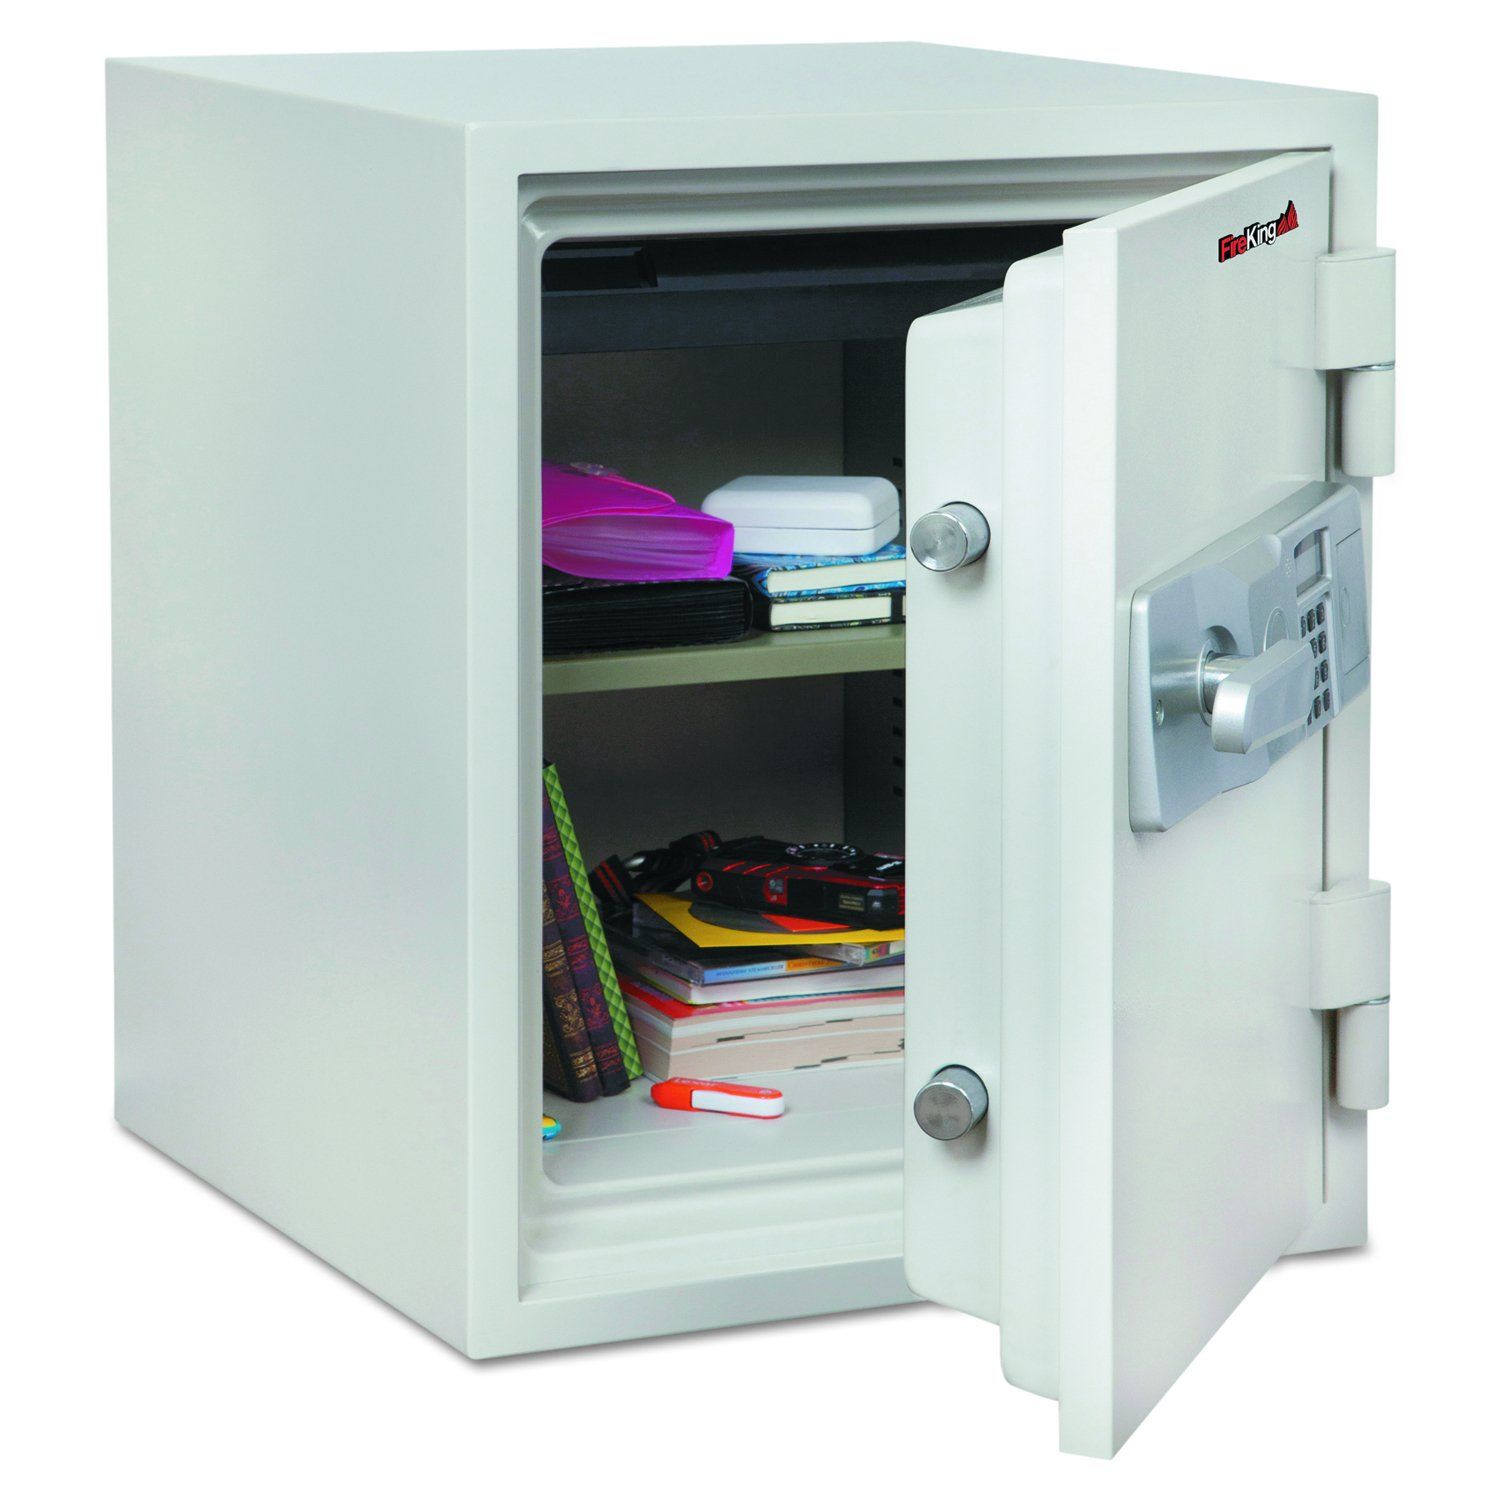 FireKing KF16122WHE Two Hour Fire and Water Safe, 1.48 ft3, 18-1/5 x 18-1/3 x 21-3/4, White